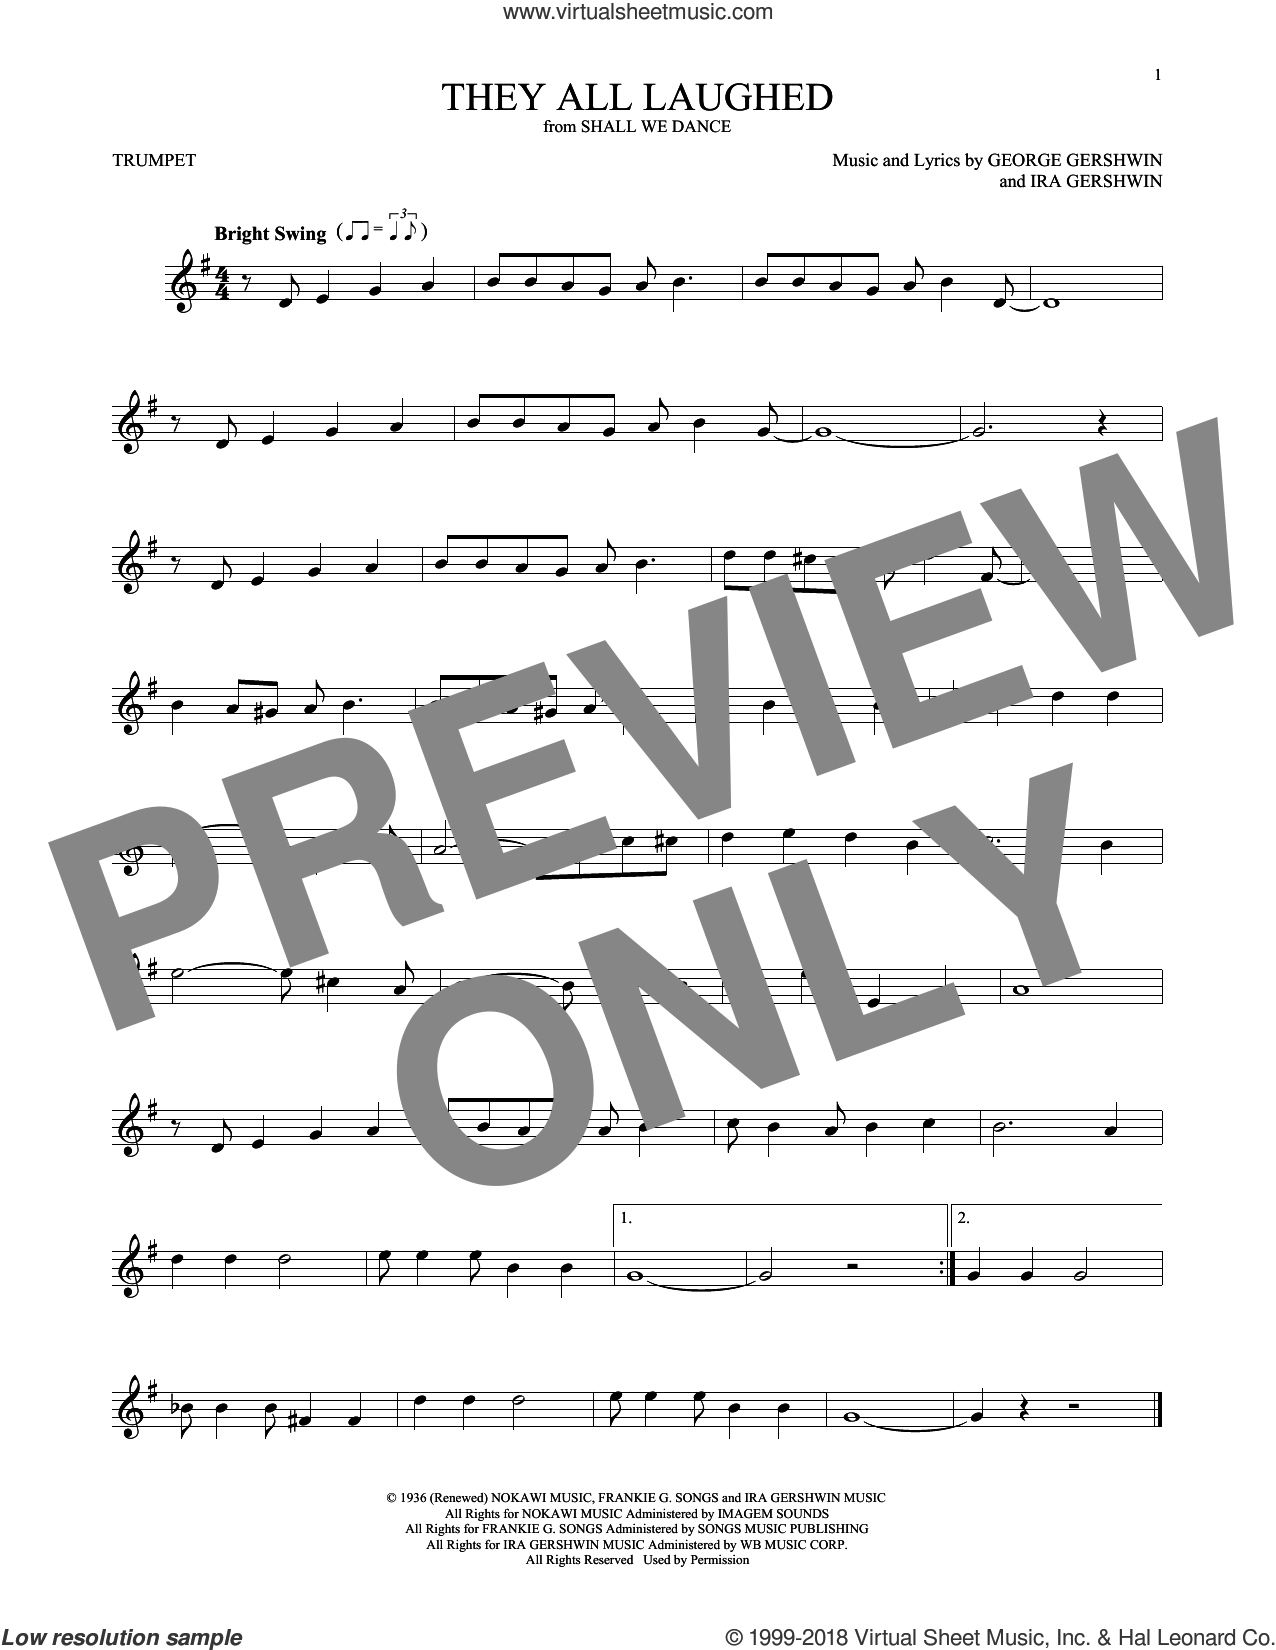 They All Laughed sheet music for trumpet solo by George Gershwin, Frank Sinatra and Ira Gershwin, intermediate skill level